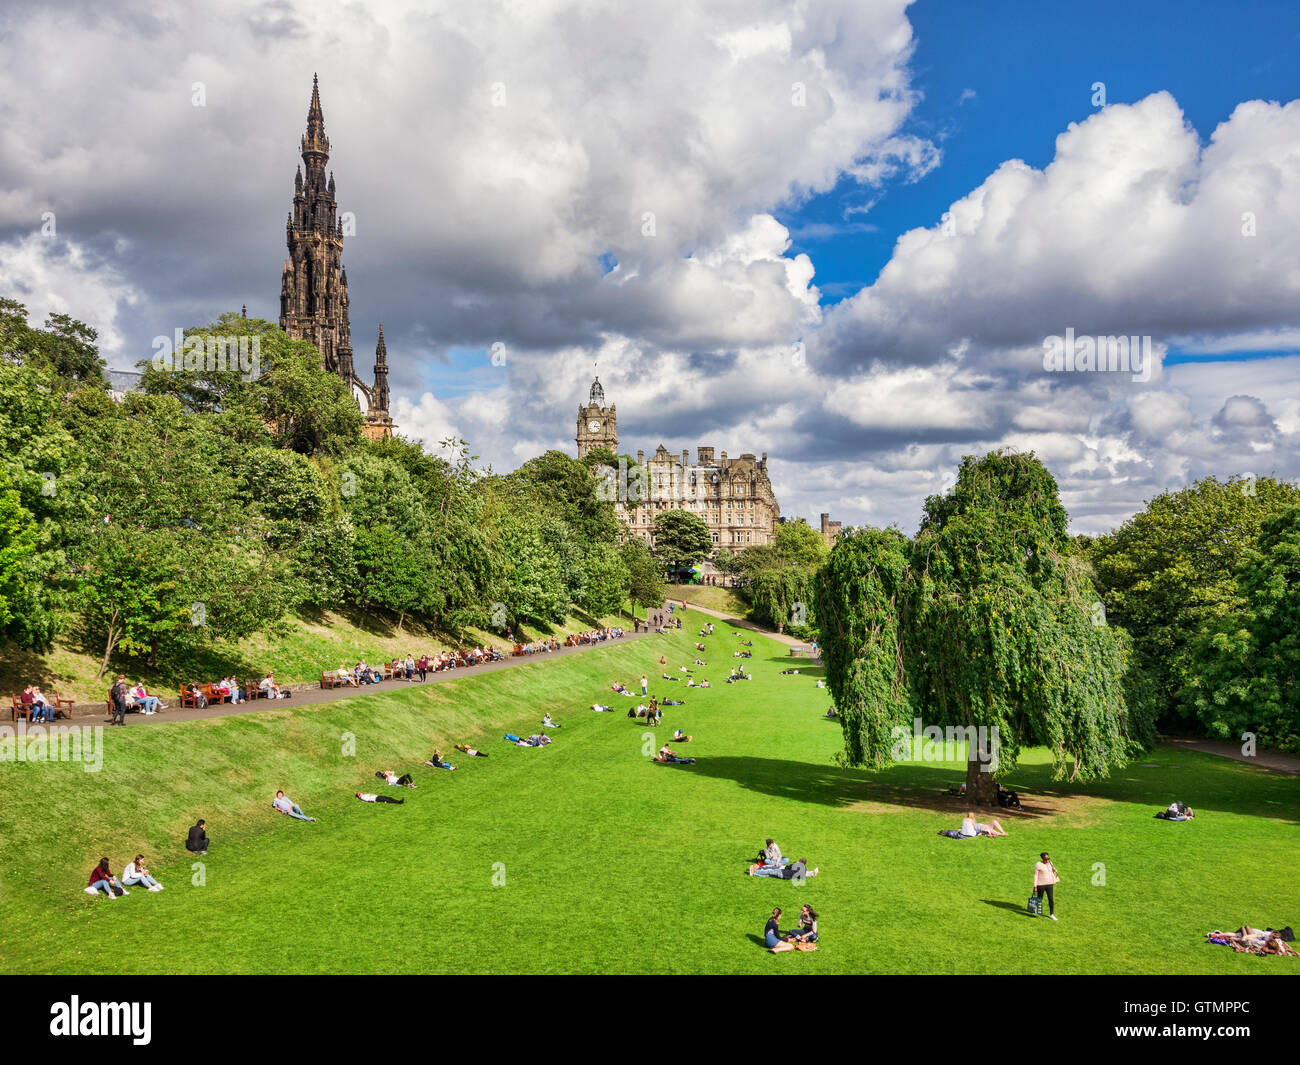 People sunbathing in Princes Street Gardens, Edinburgh, on a fine day in early autumn, with with Scott Monument - Stock Image